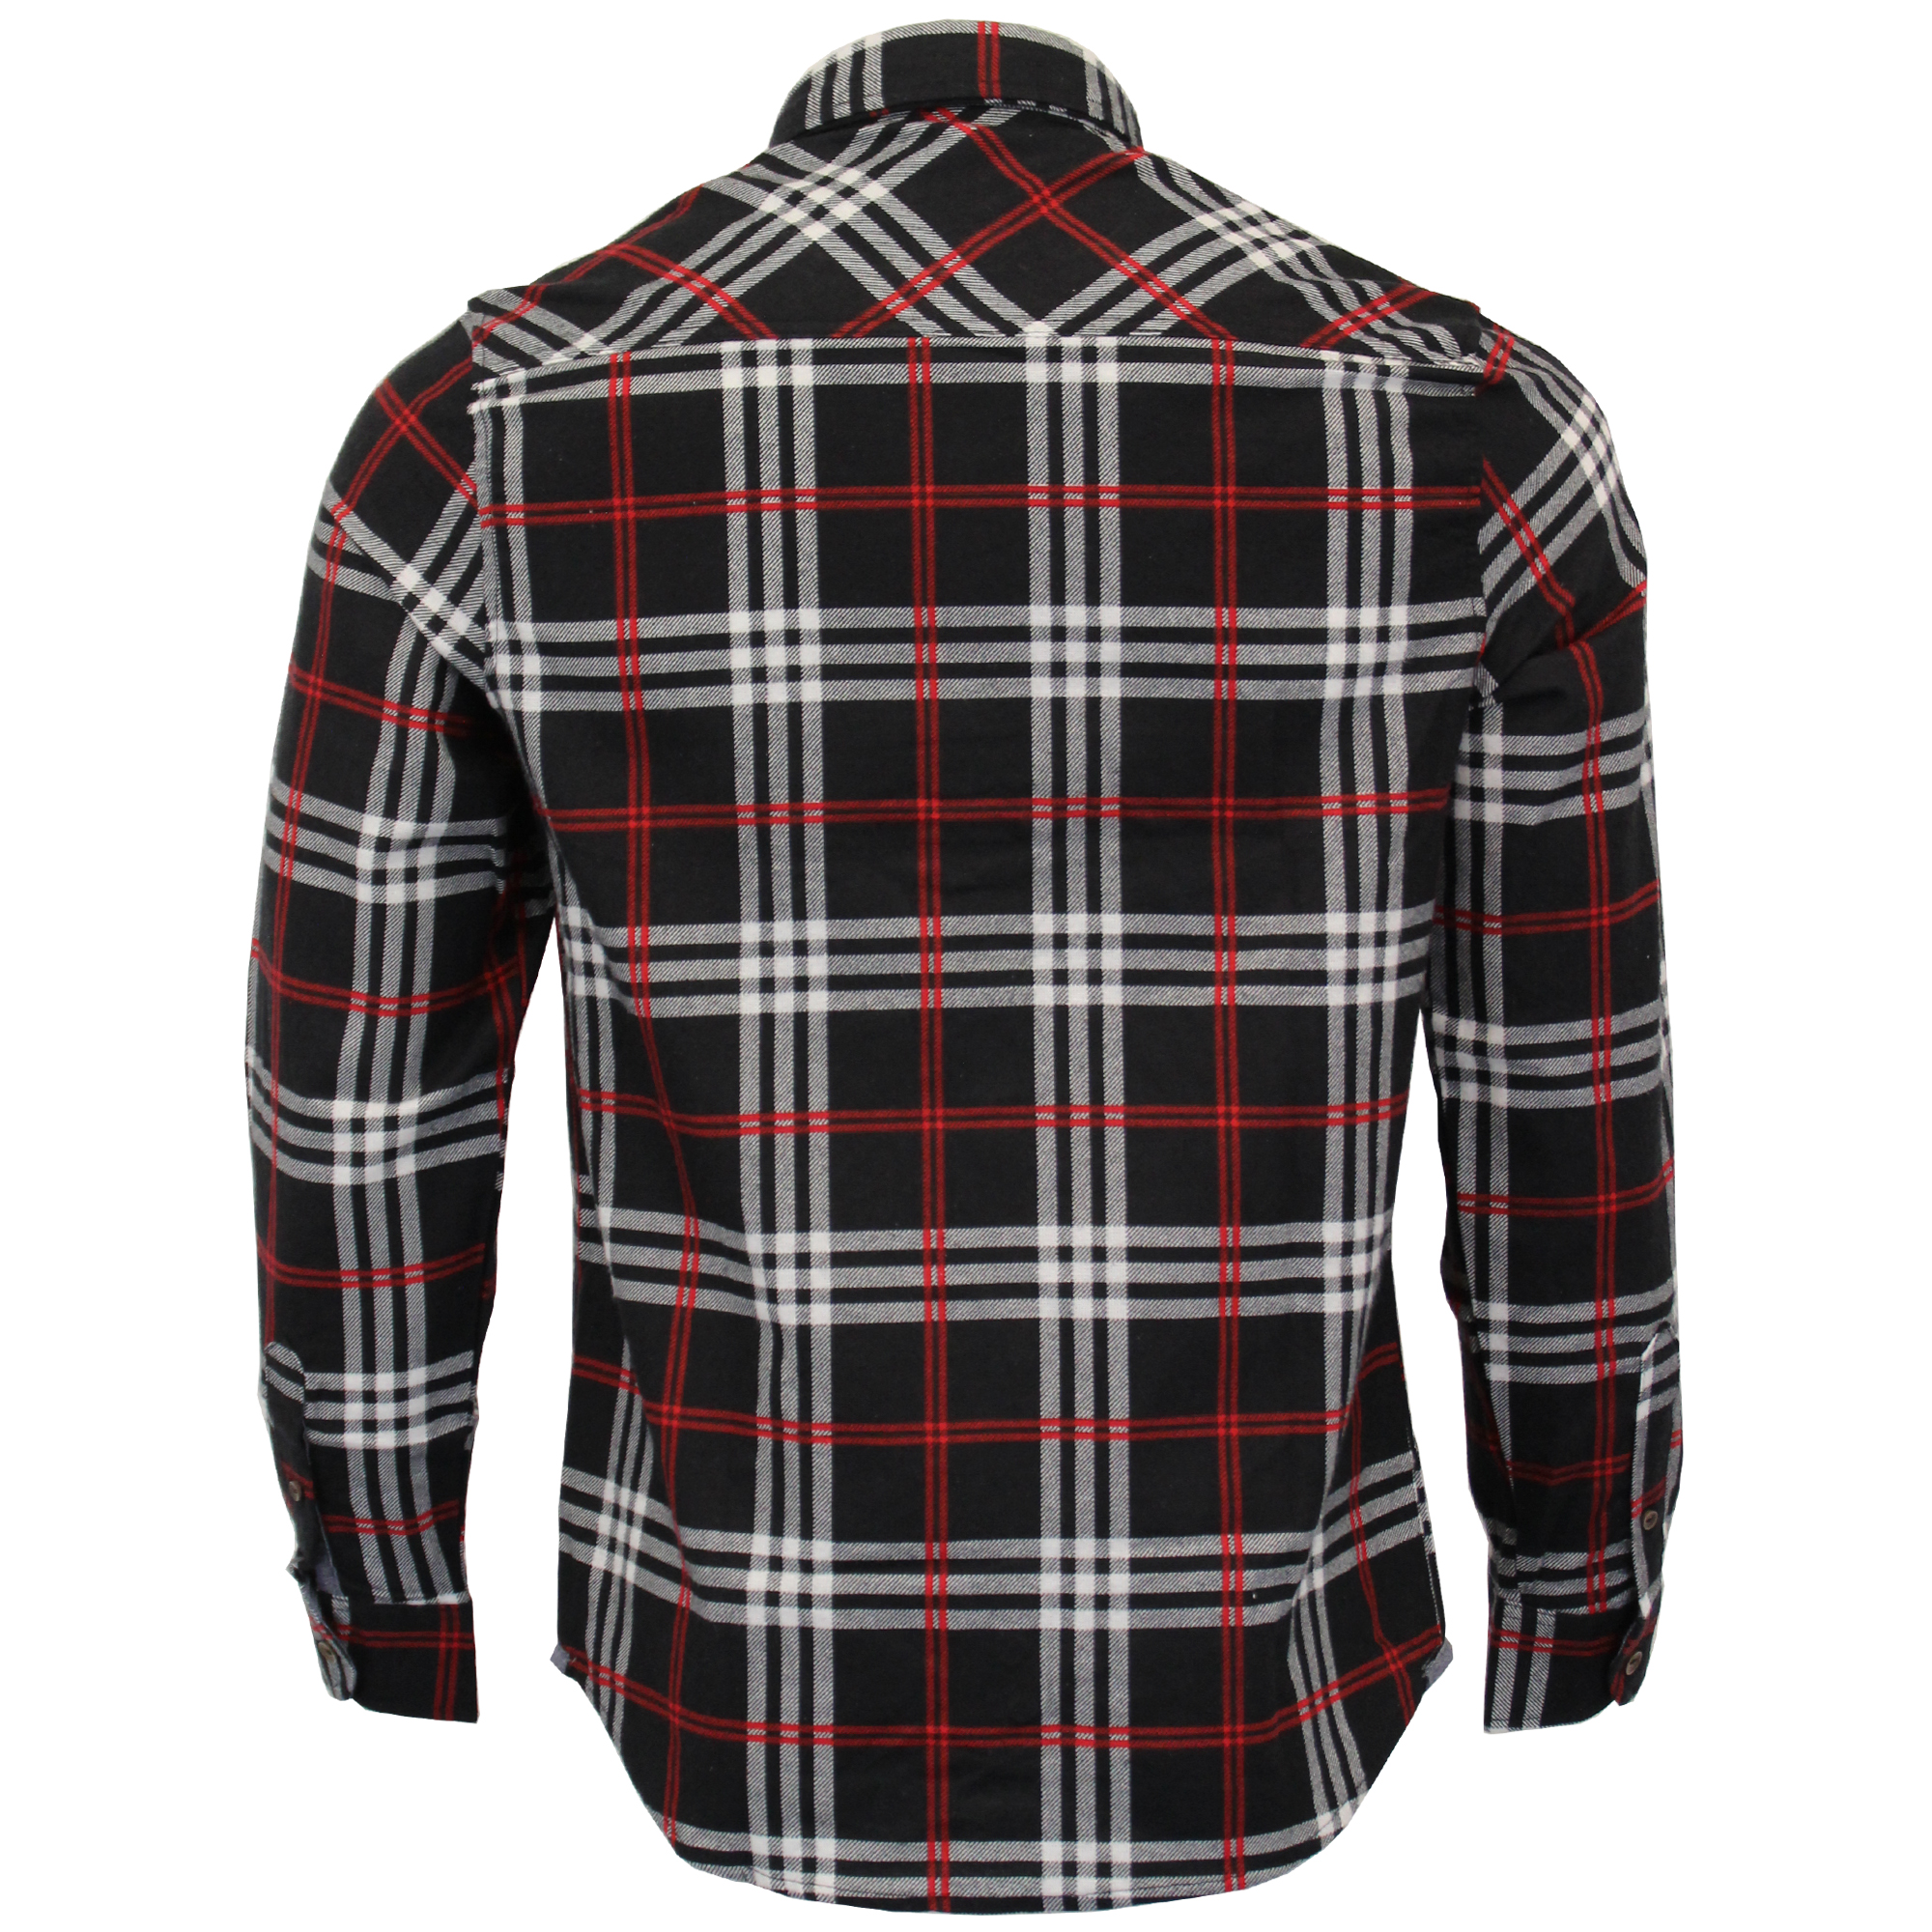 Mens-Checked-Tartan-Long-Sleeved-Collared-Shirt-By-Brave-Soul miniatuur 3